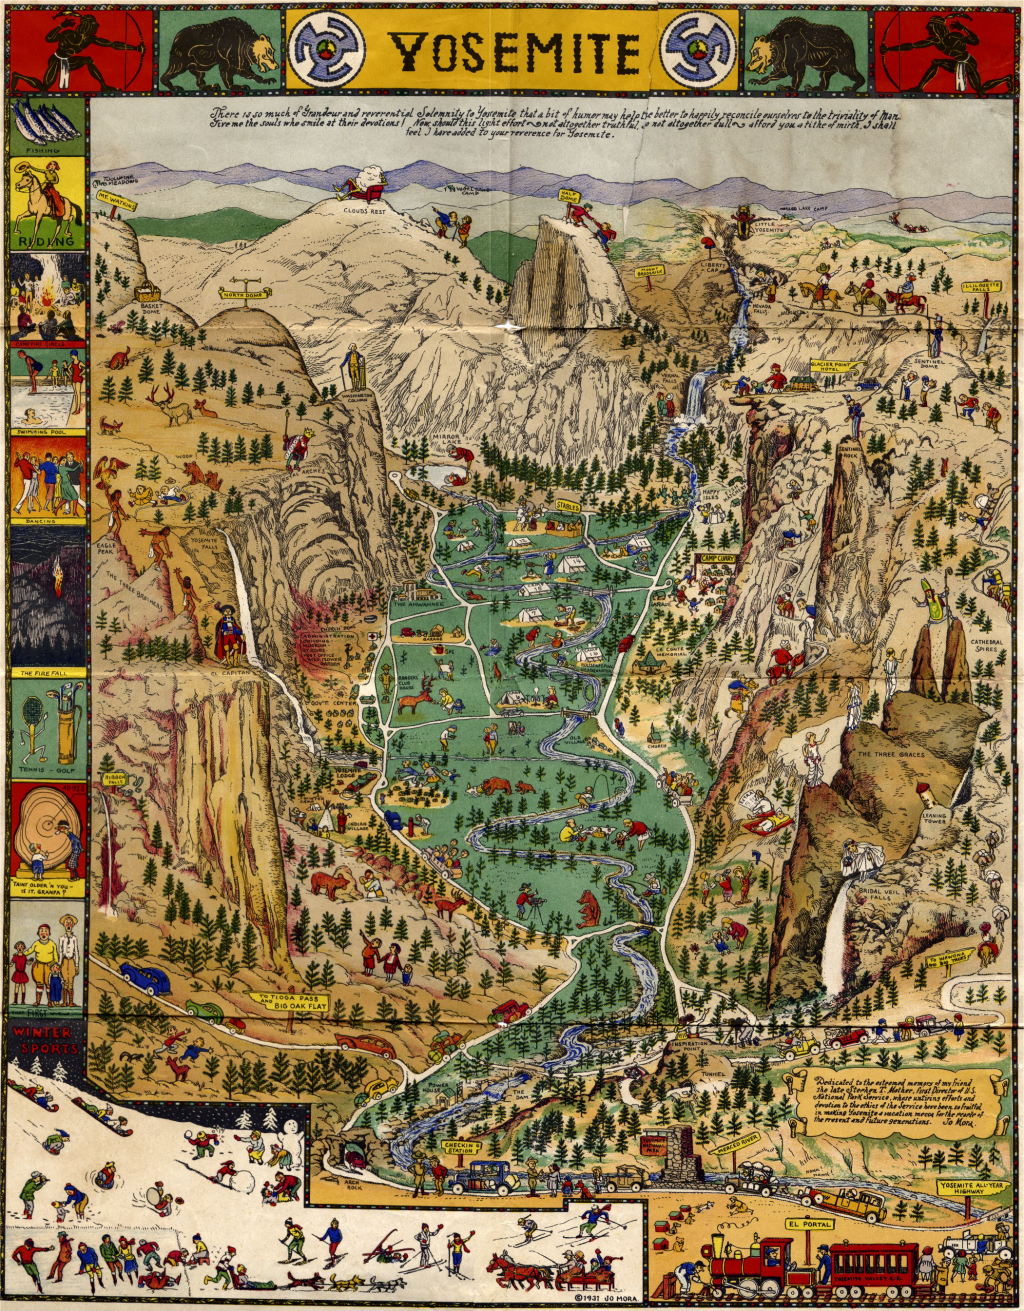 MapCarte 107365 Yosemite by Jo Mora 1931 – Yosemite Tourist Map